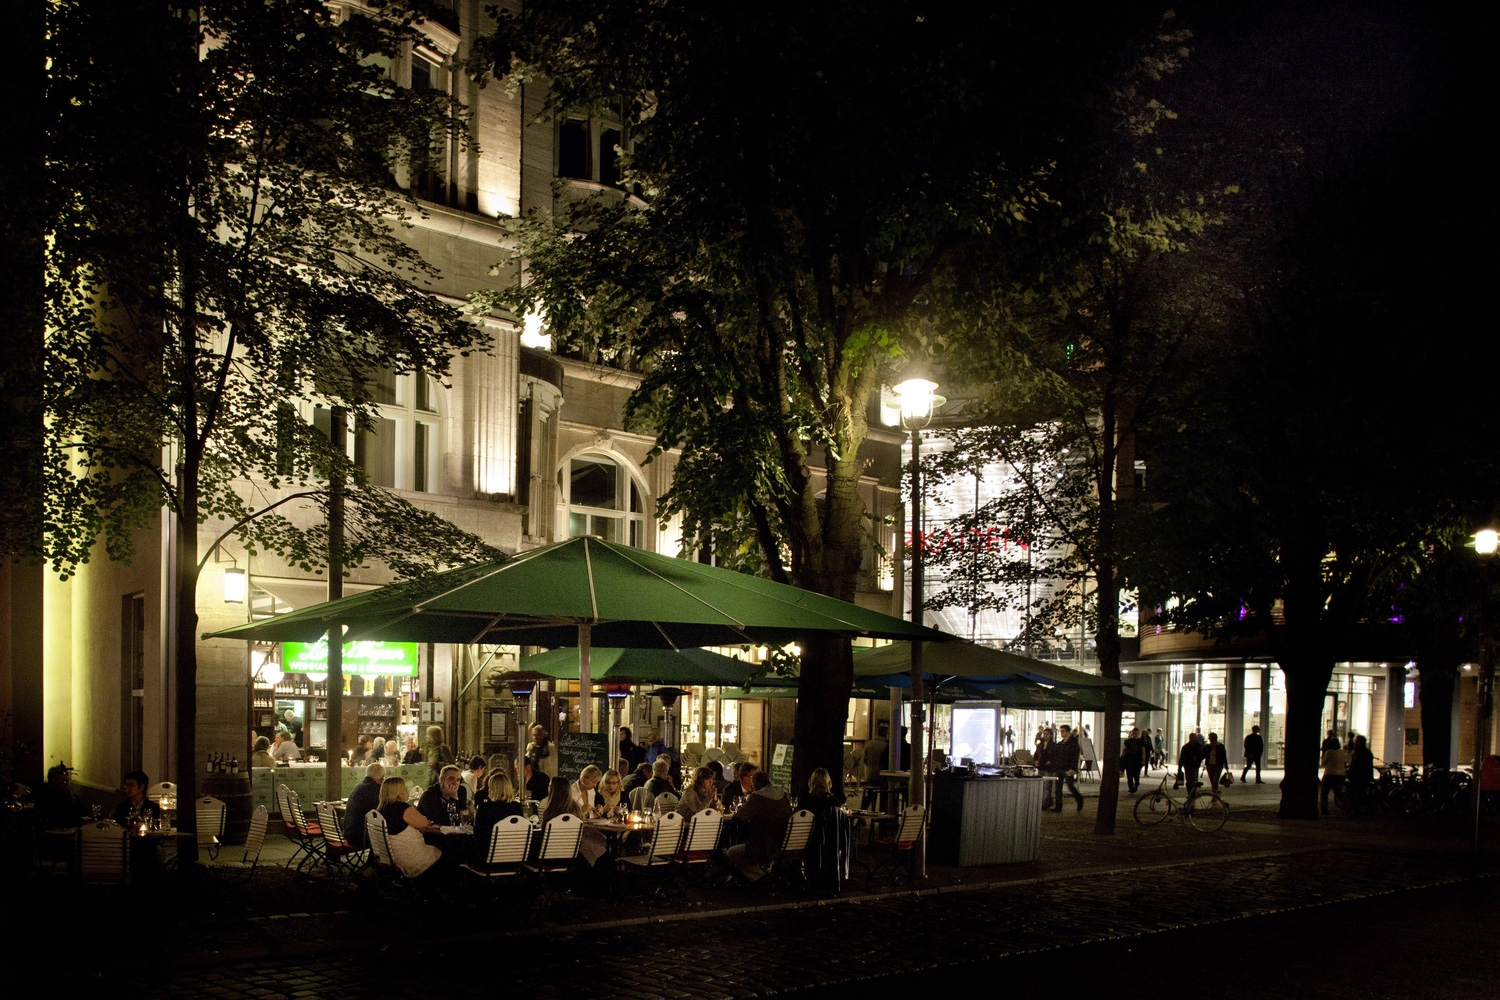 A crowd of people eating at the outdoor patio of a restaurant at night in the city.